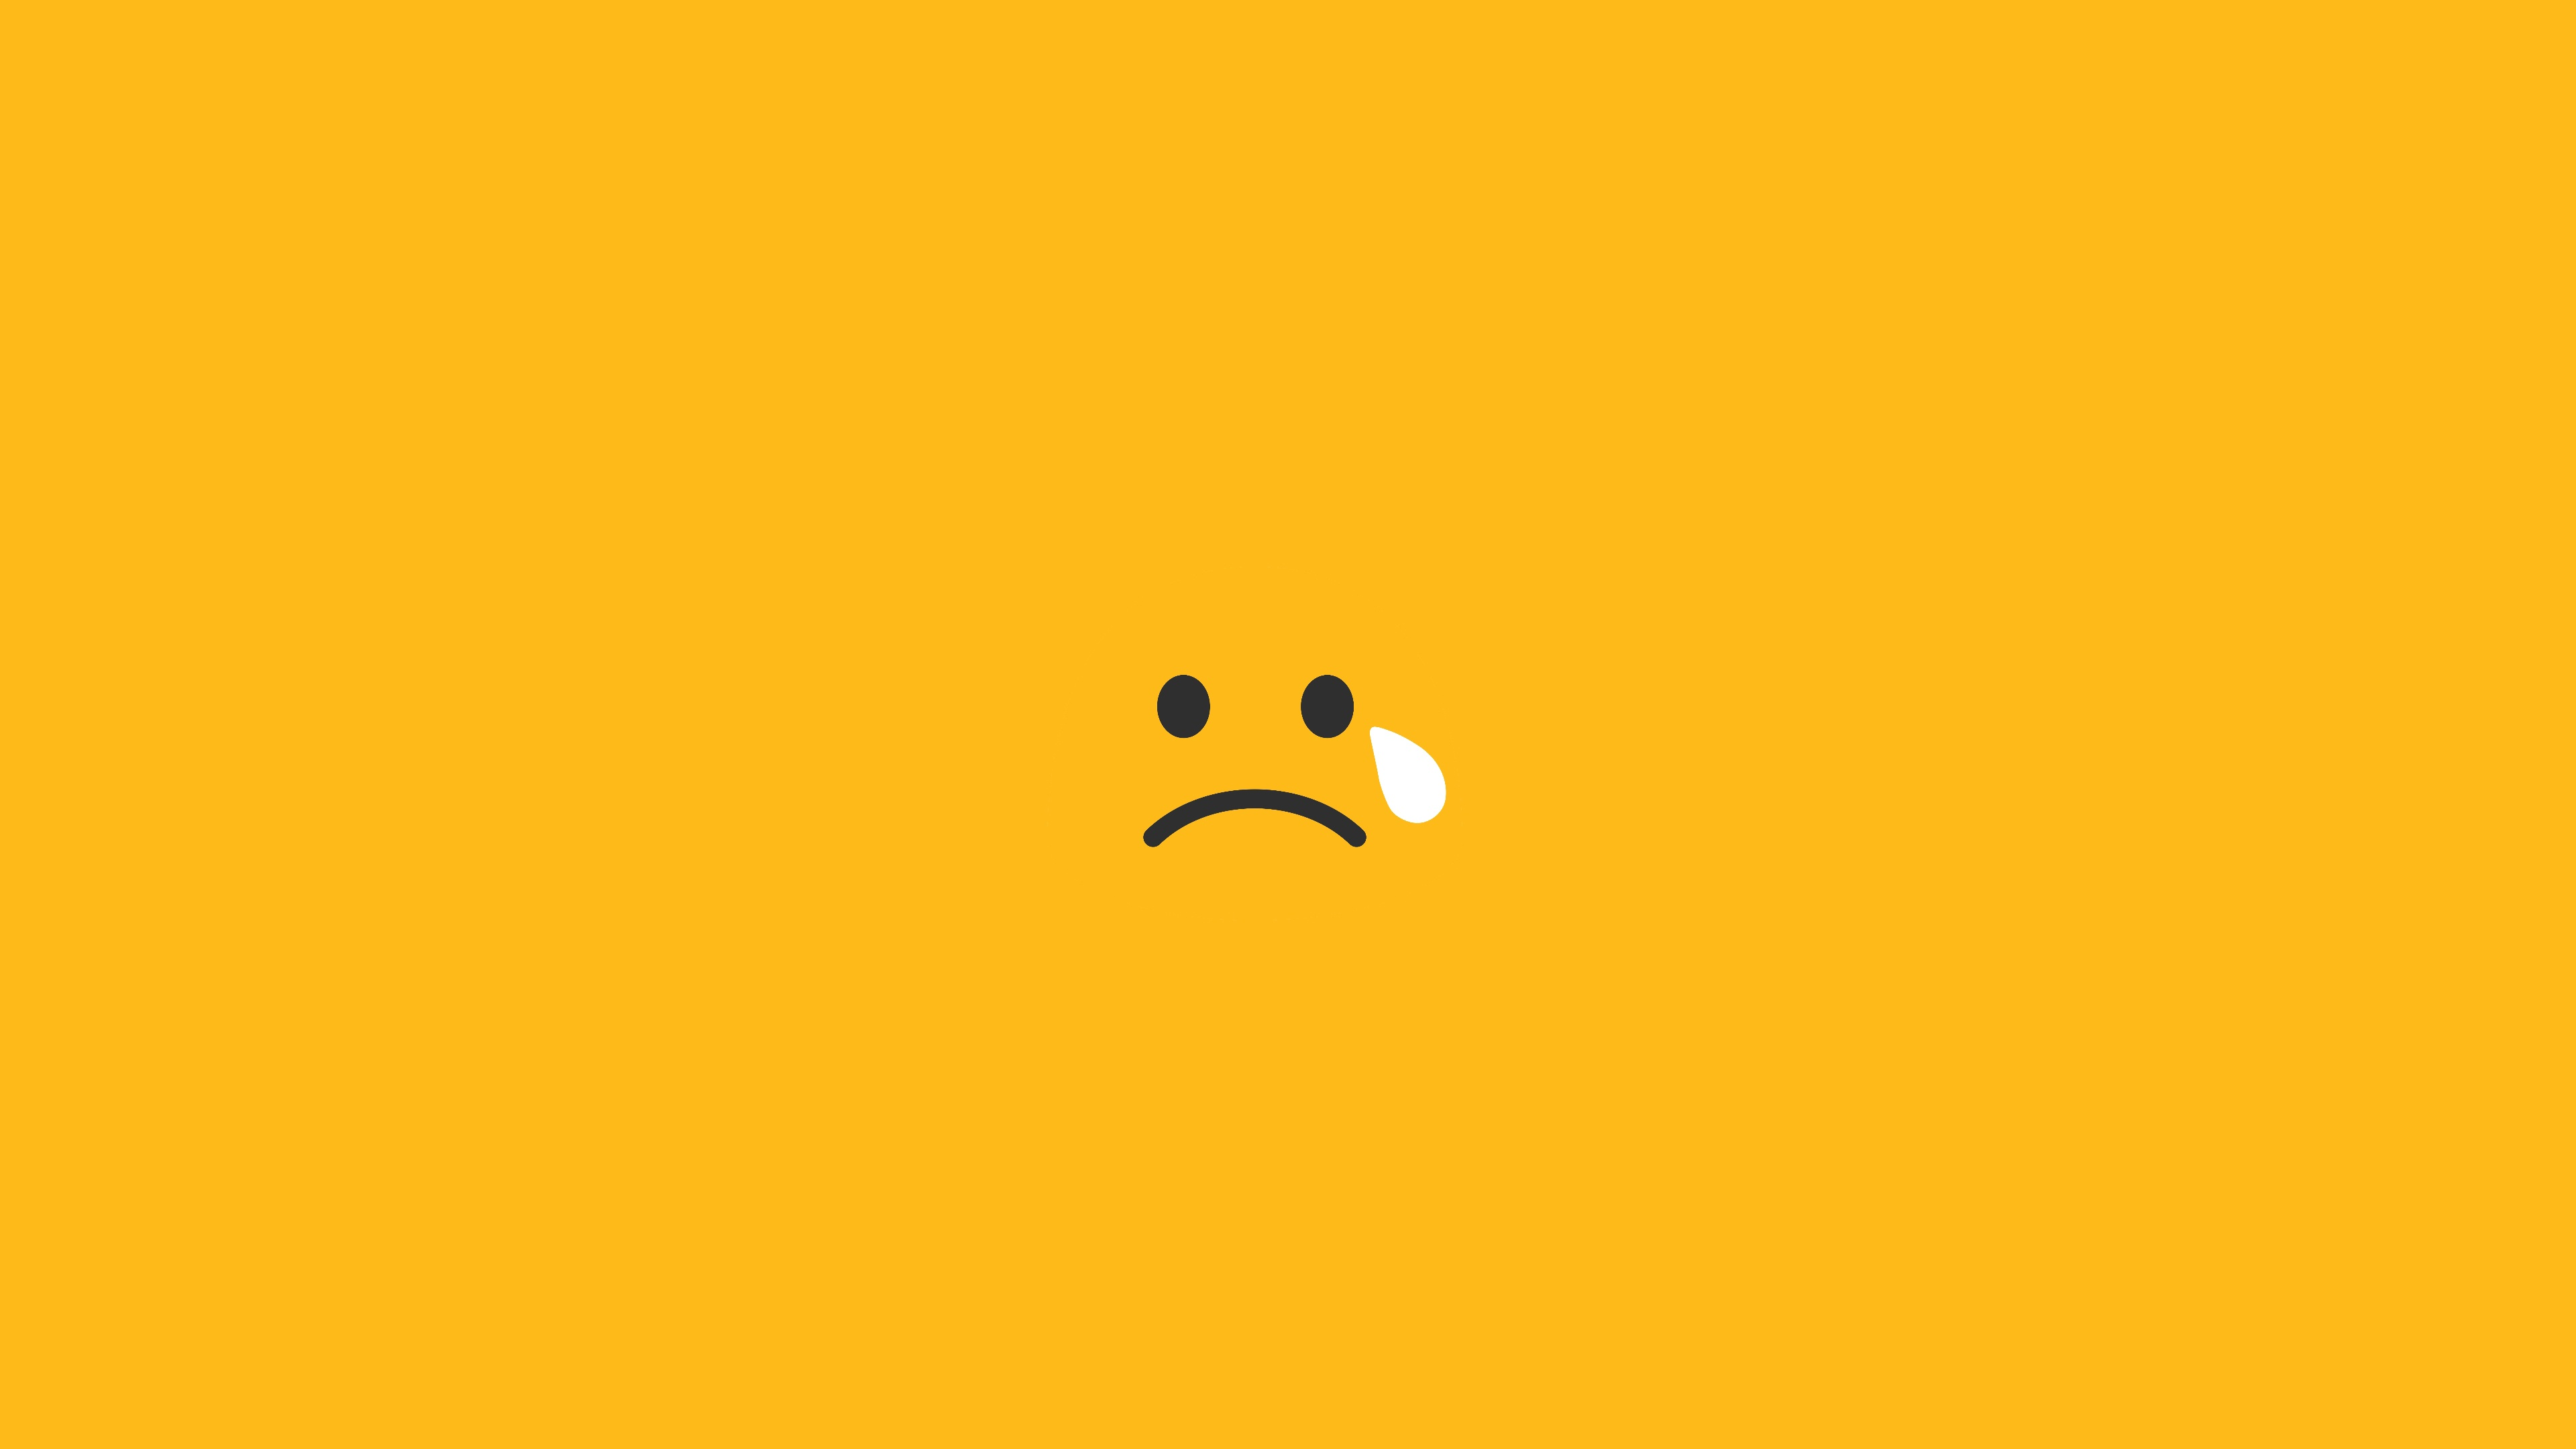 Sad Smiley Wallpaper33 Download HD Wallpapers 3840x2160